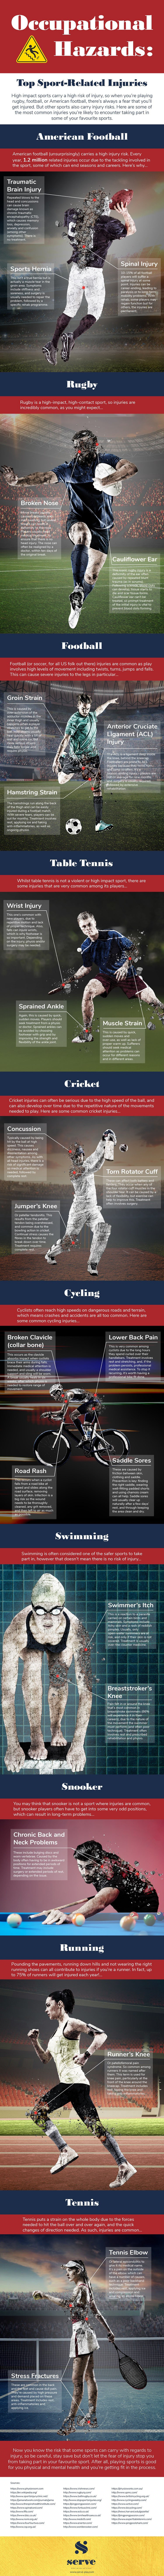 Sports-Injuries-infographic- serveplay